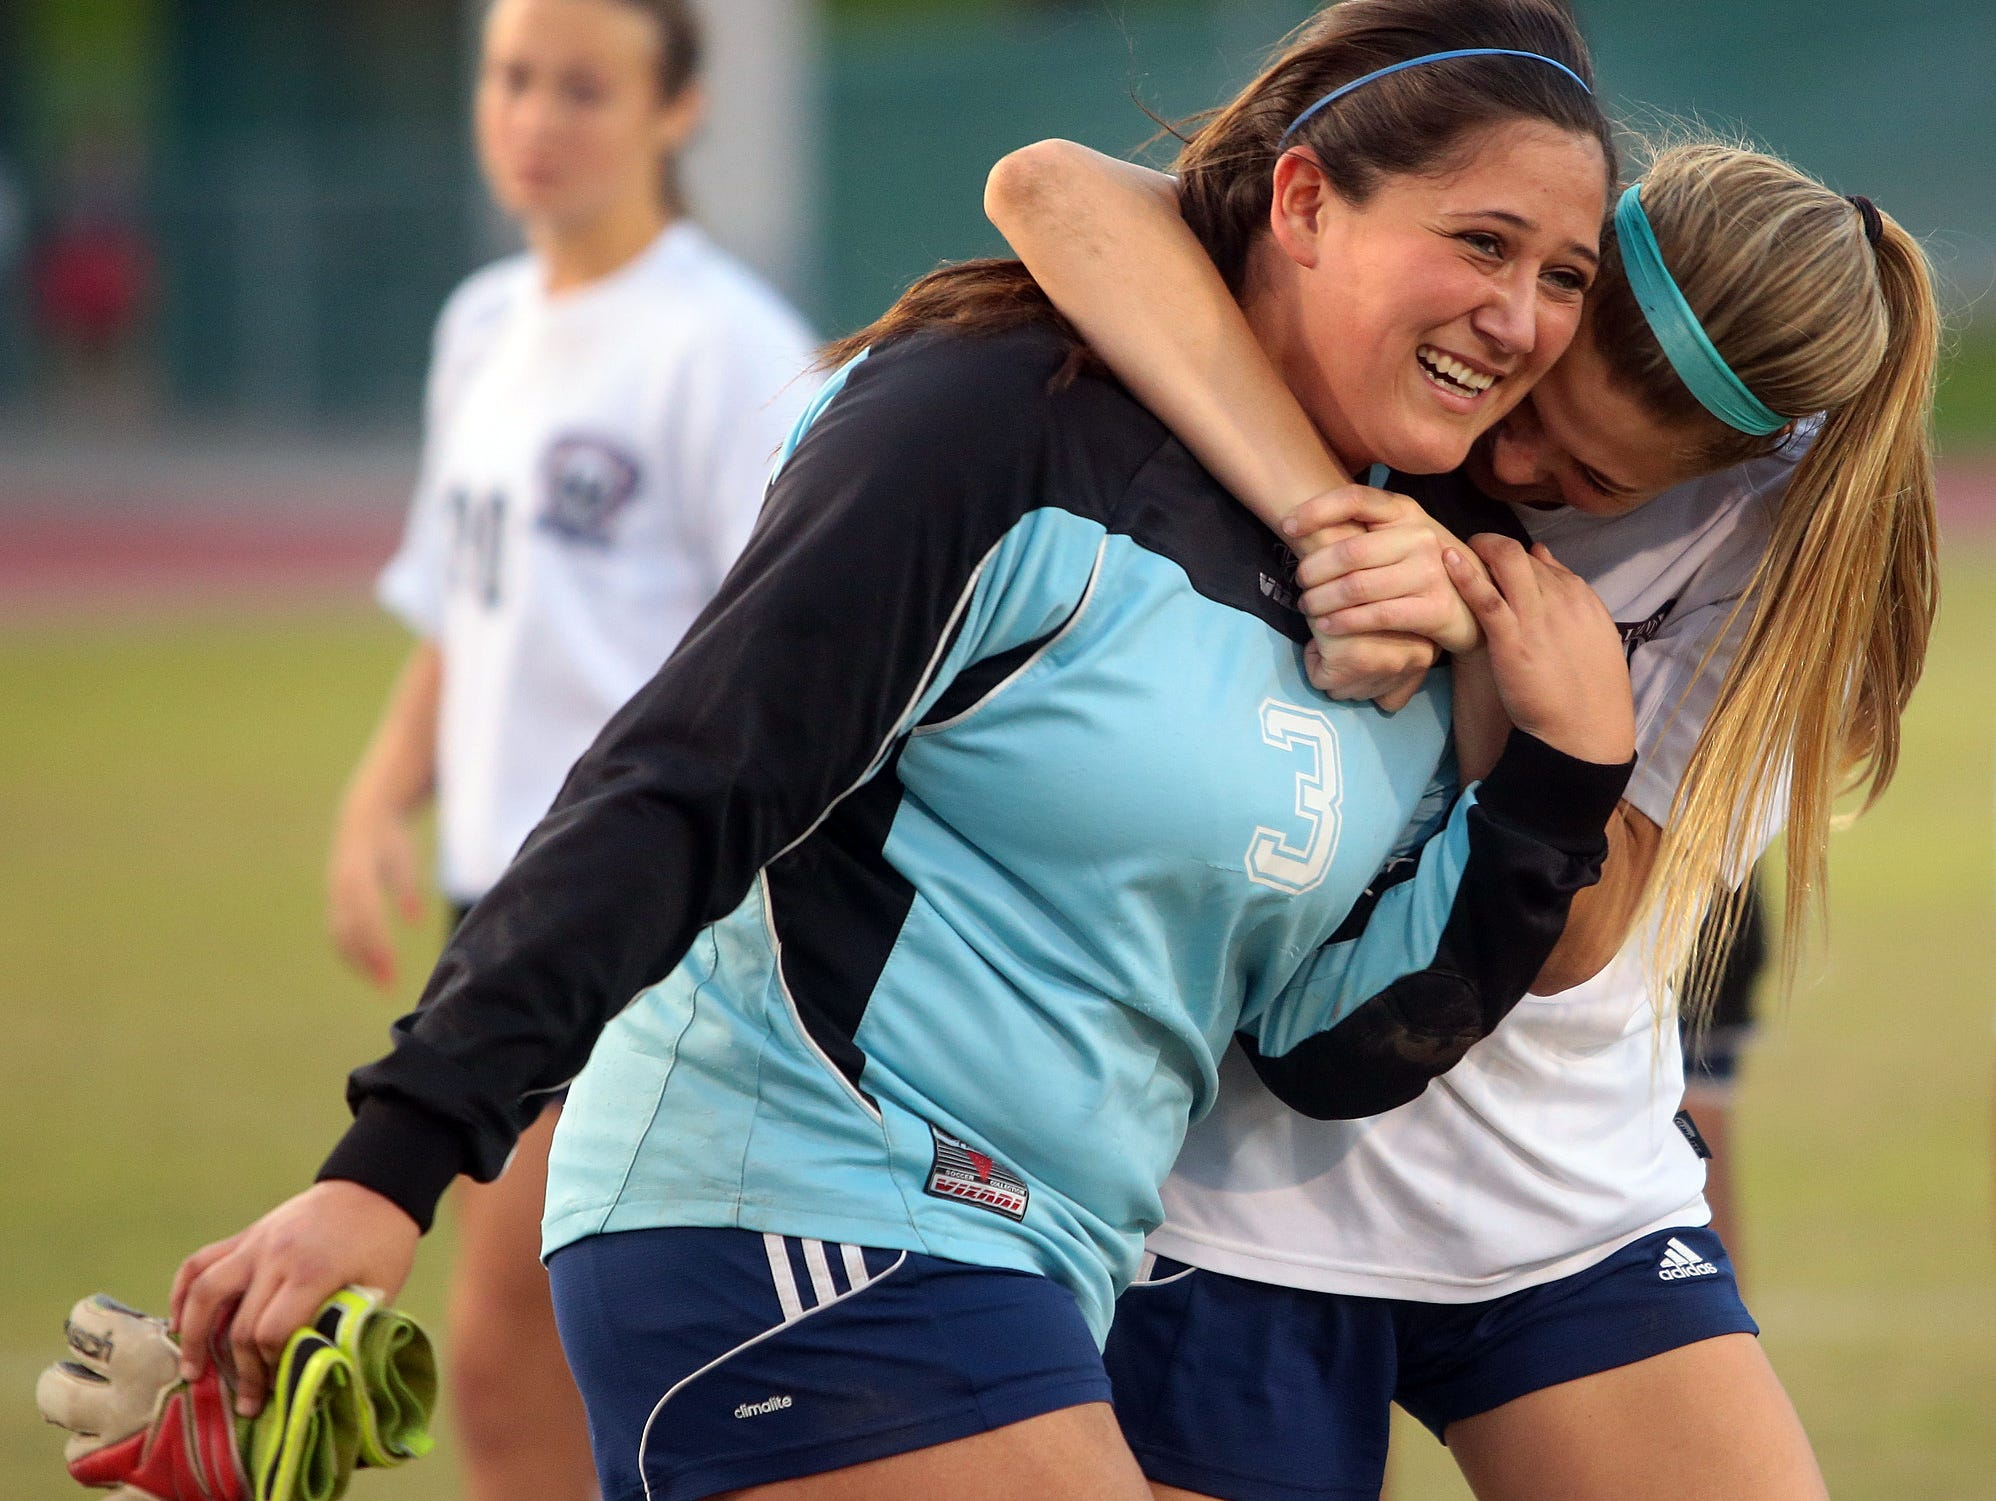 La Quinta goalkeeper Arianna Rodriguez (3) gets hugged after blocking all but one penalty kick during the Blackhawks' 1-1 playoff victory over visiting Ocean View on Thursday, February 26, 2015 at La Quinta. After a two scoreless overtime periods, the game came down to penalty kicks with the Blackhawks winning those, 4-1.